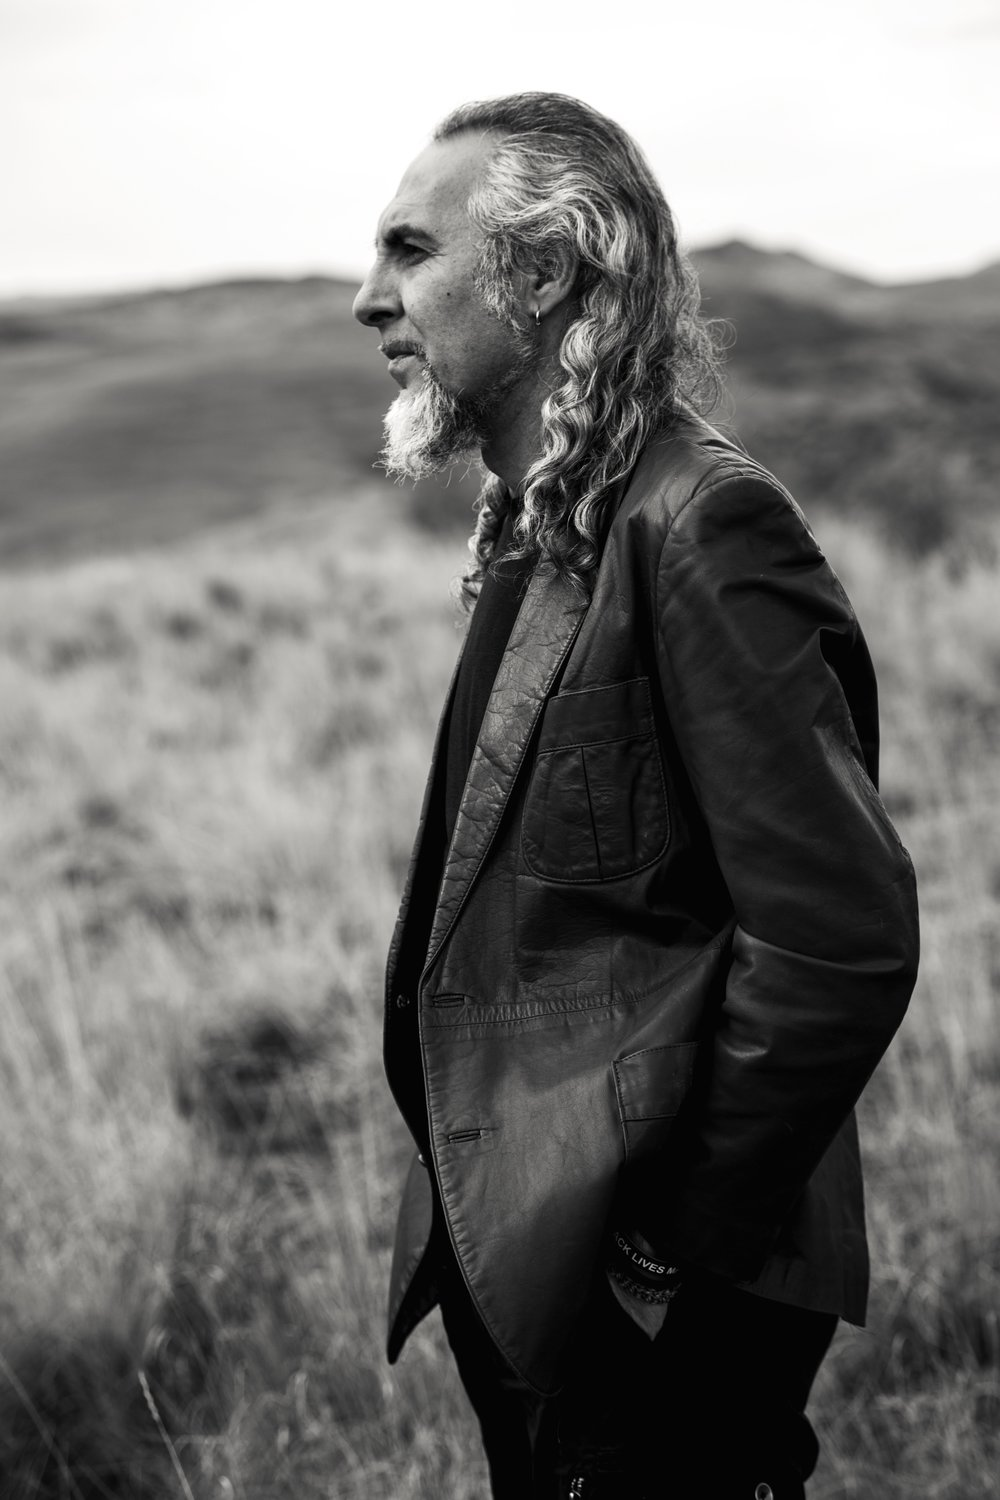 - Flamenco master Luis will be giving a special workshop in 'Soniquete' geared toward guitarists but open to anyone interested in learning more about compás.  Luis will also teach a Zambomba workshop for dancers, singers, guitarists and aficionados!   Click on the links below to purchase tickets to the workshops and visit the San Francisco Flamenco Dance Company Facebook page HERE for detailed information.